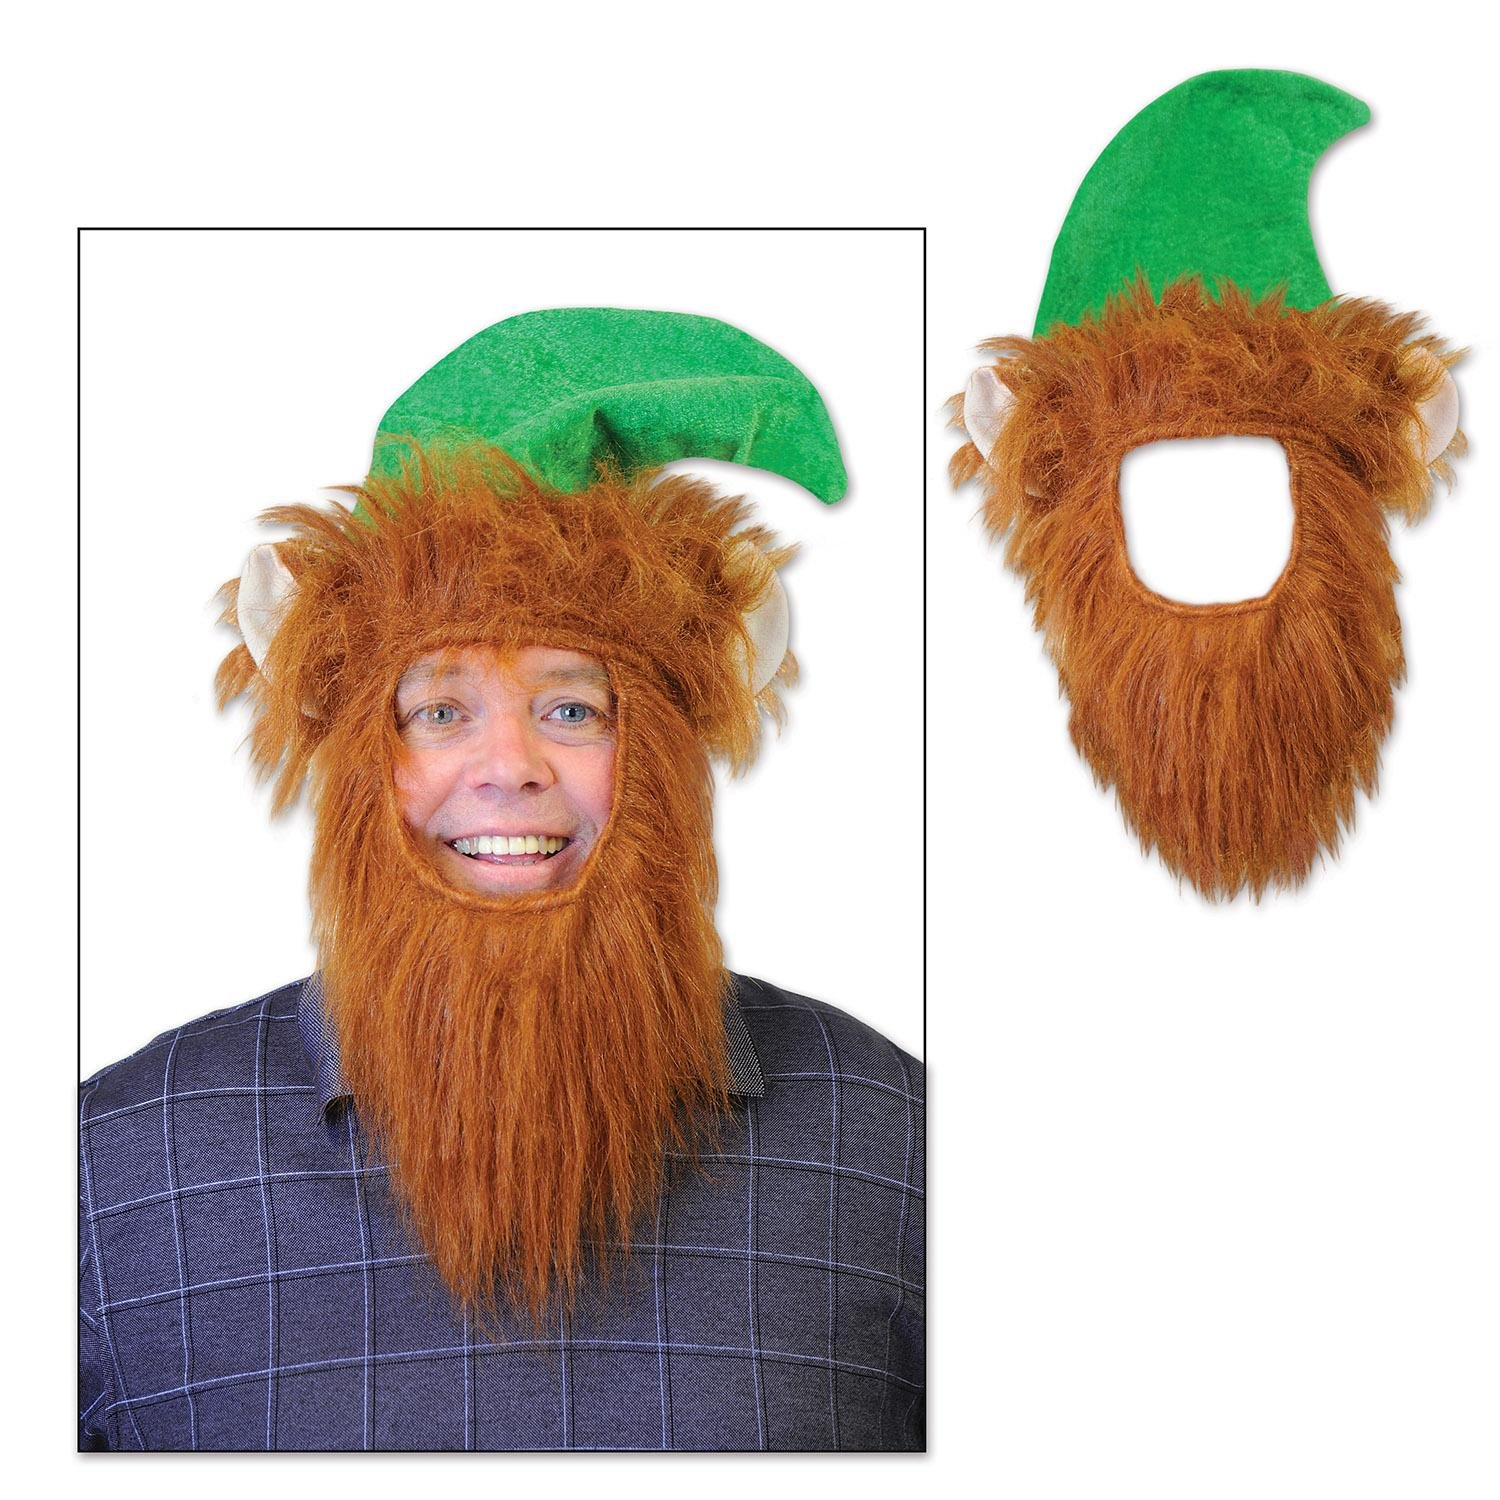 Party Central Pack of 12 Green Hats with Fuzzy Beard Christmas Elf Costume Accessories by Party Central